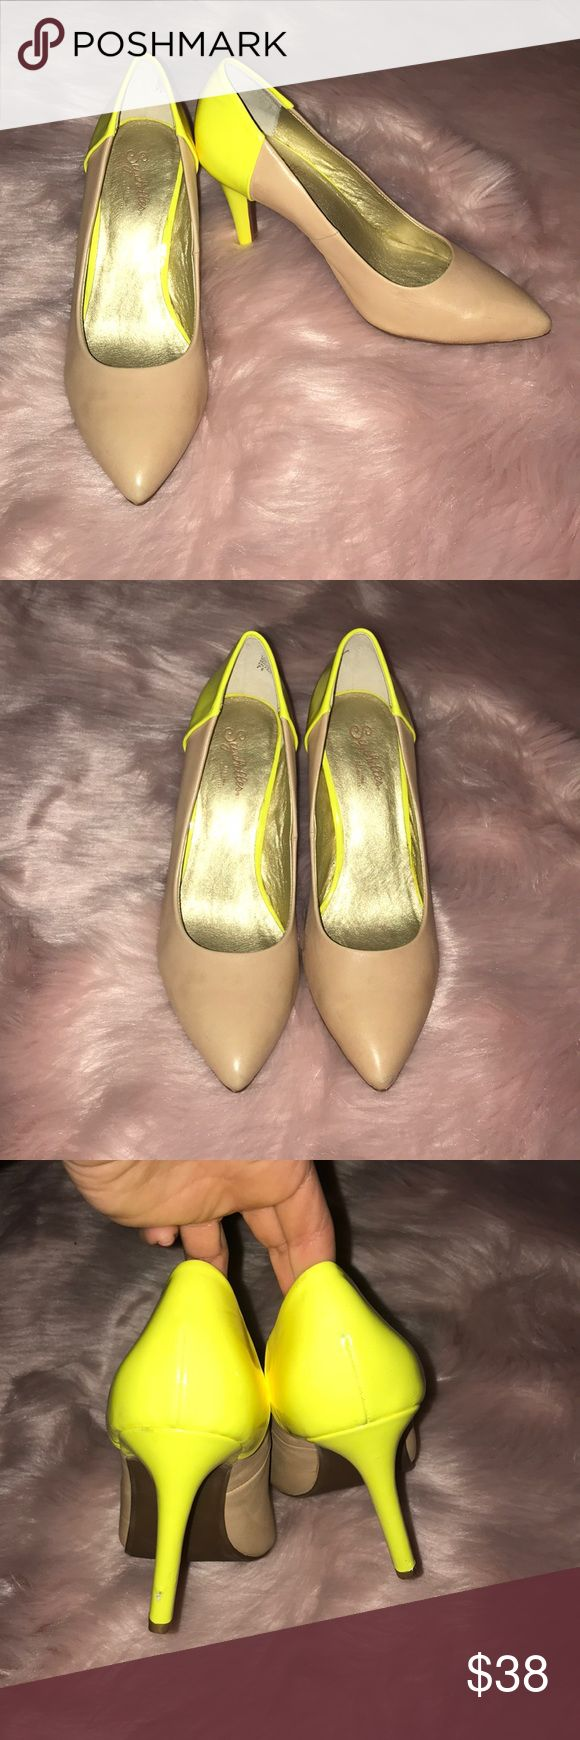 Seychelles Nude and Neon Pumps In great condition with some wear on the back (shown in photos) Seychelles Shoes Heels